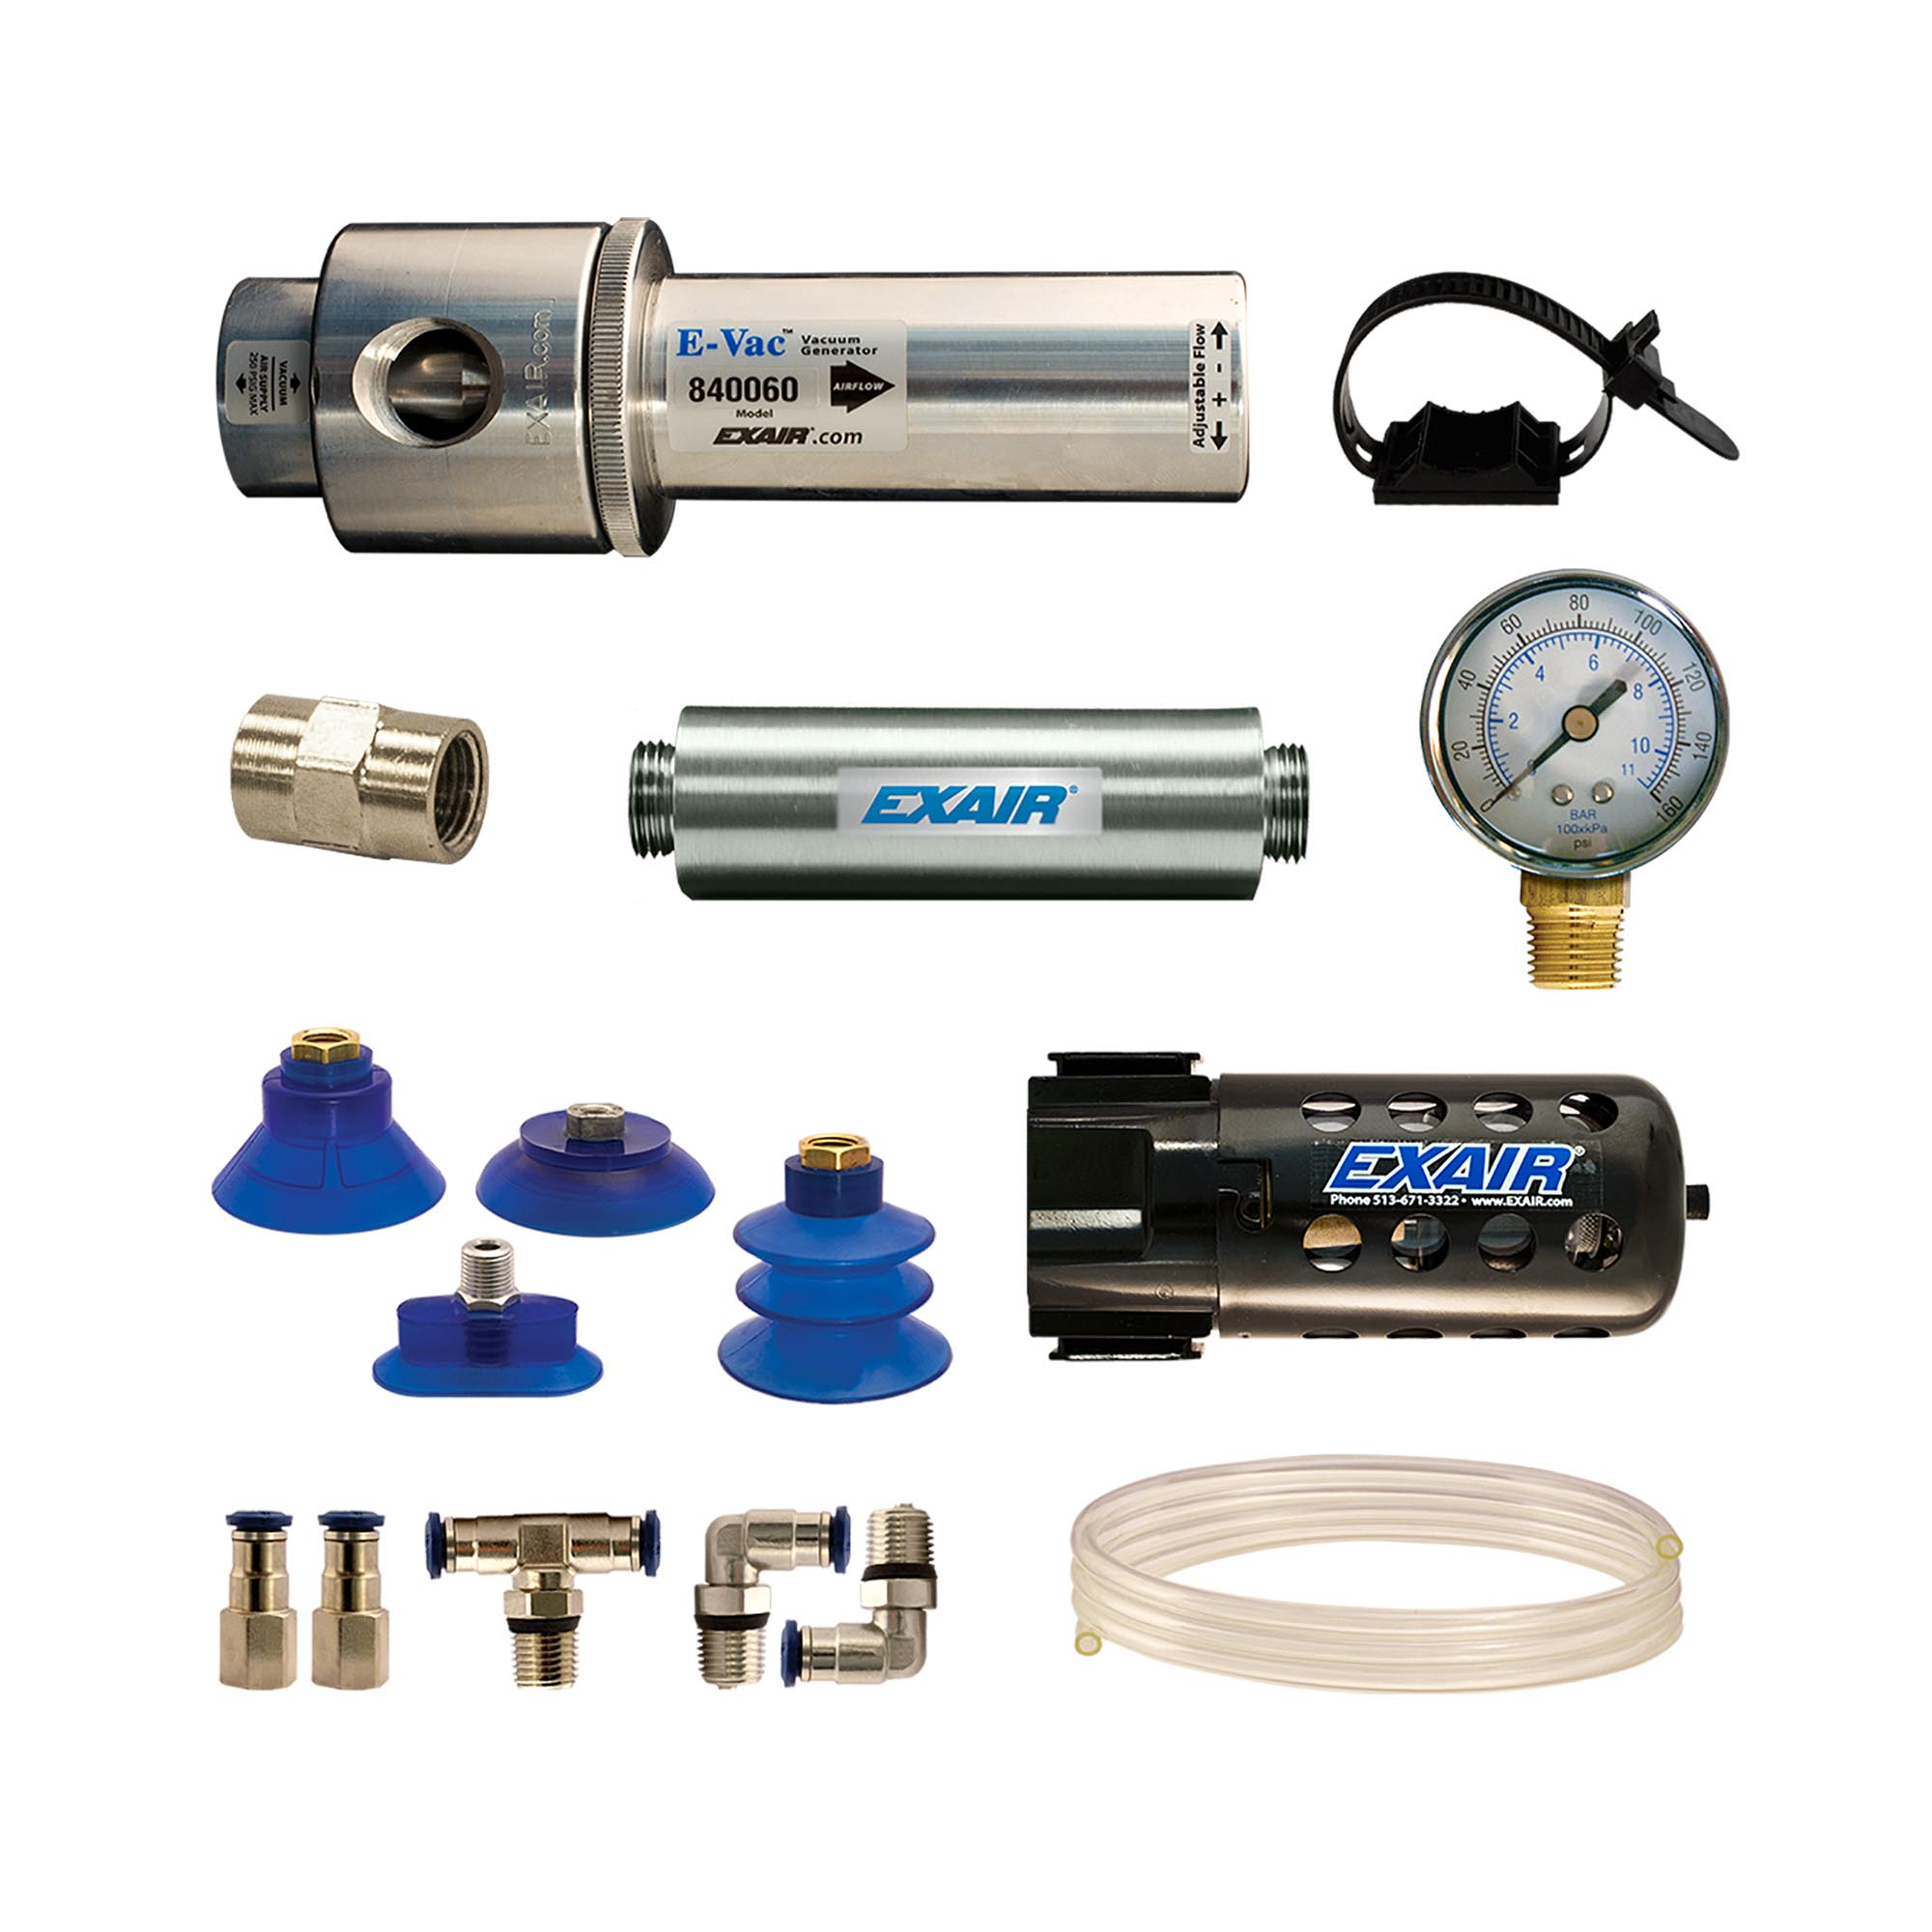 A deluxe kit includes the E-Vac, straight thru muffler, suction cups, fittings, vacuum tube, a filter separator and pressure gauge.